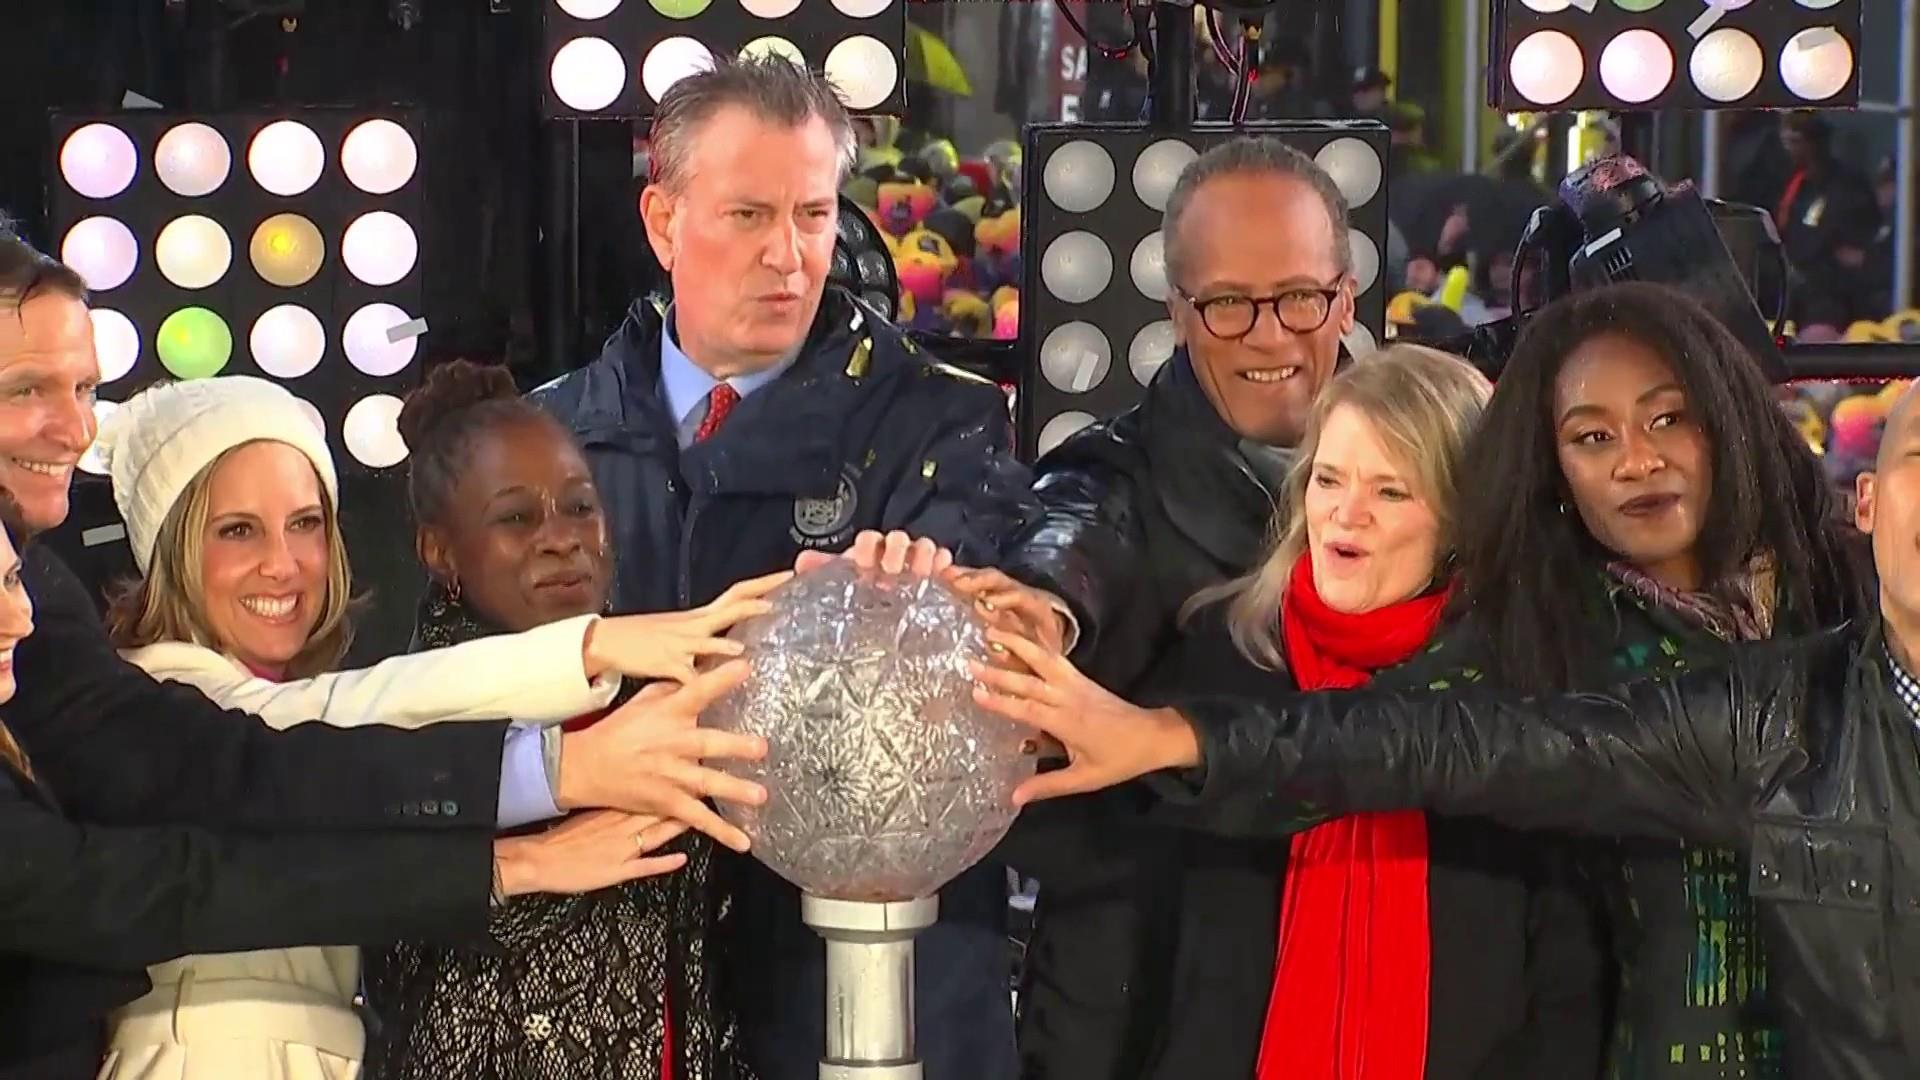 Lester Holt Takes Part In Times Square New Years Eve Celebration